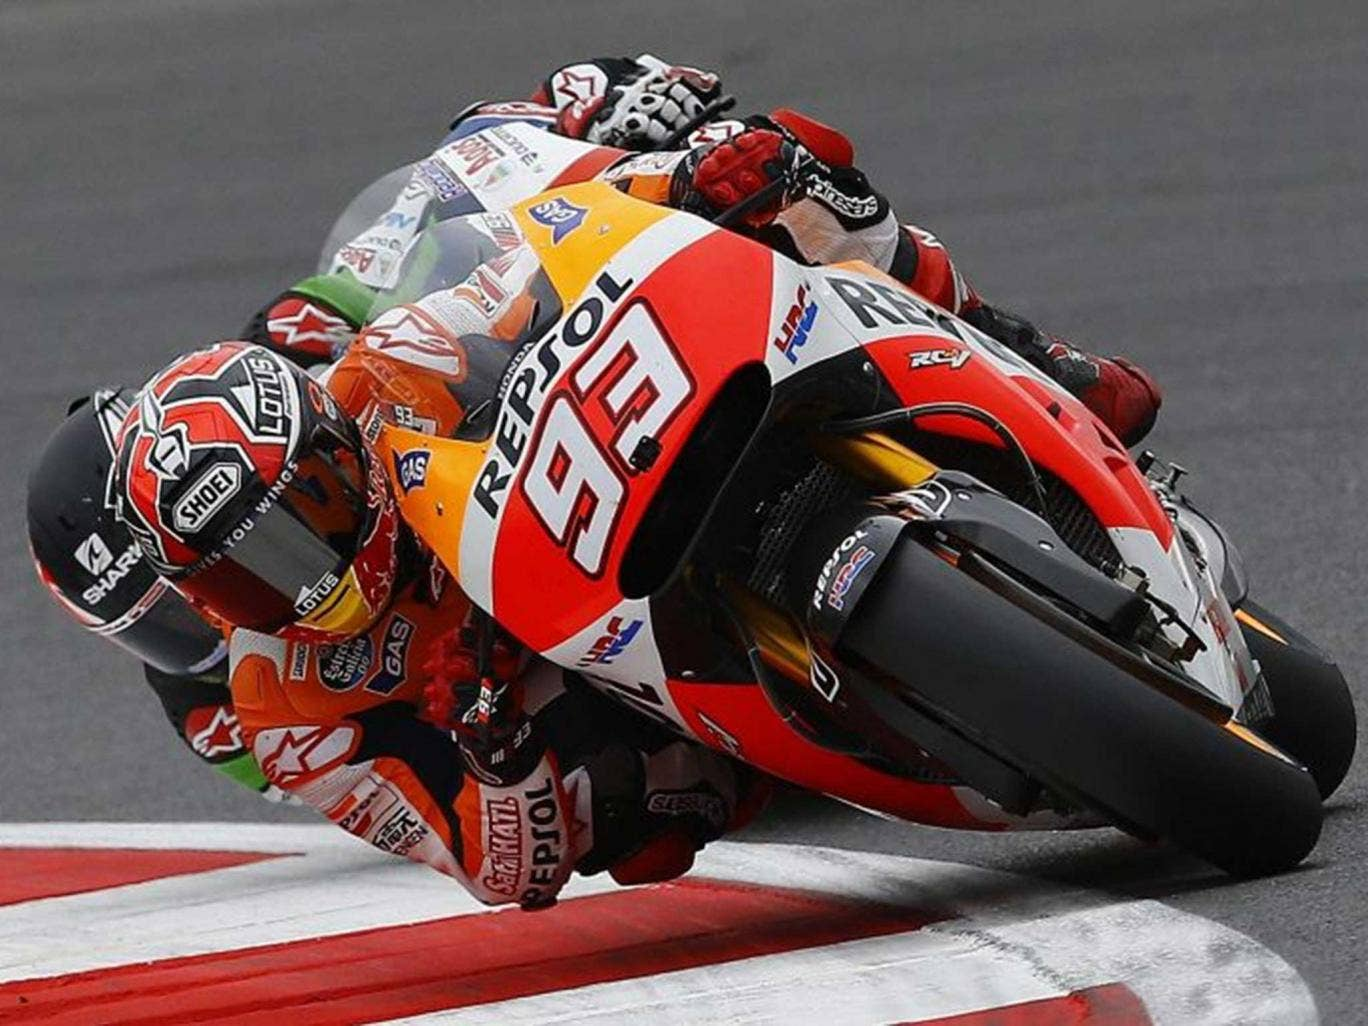 Lean time over: Marc Marquez leads Briton Scott Redding in qualifying at Silverstone after coming fourth last time